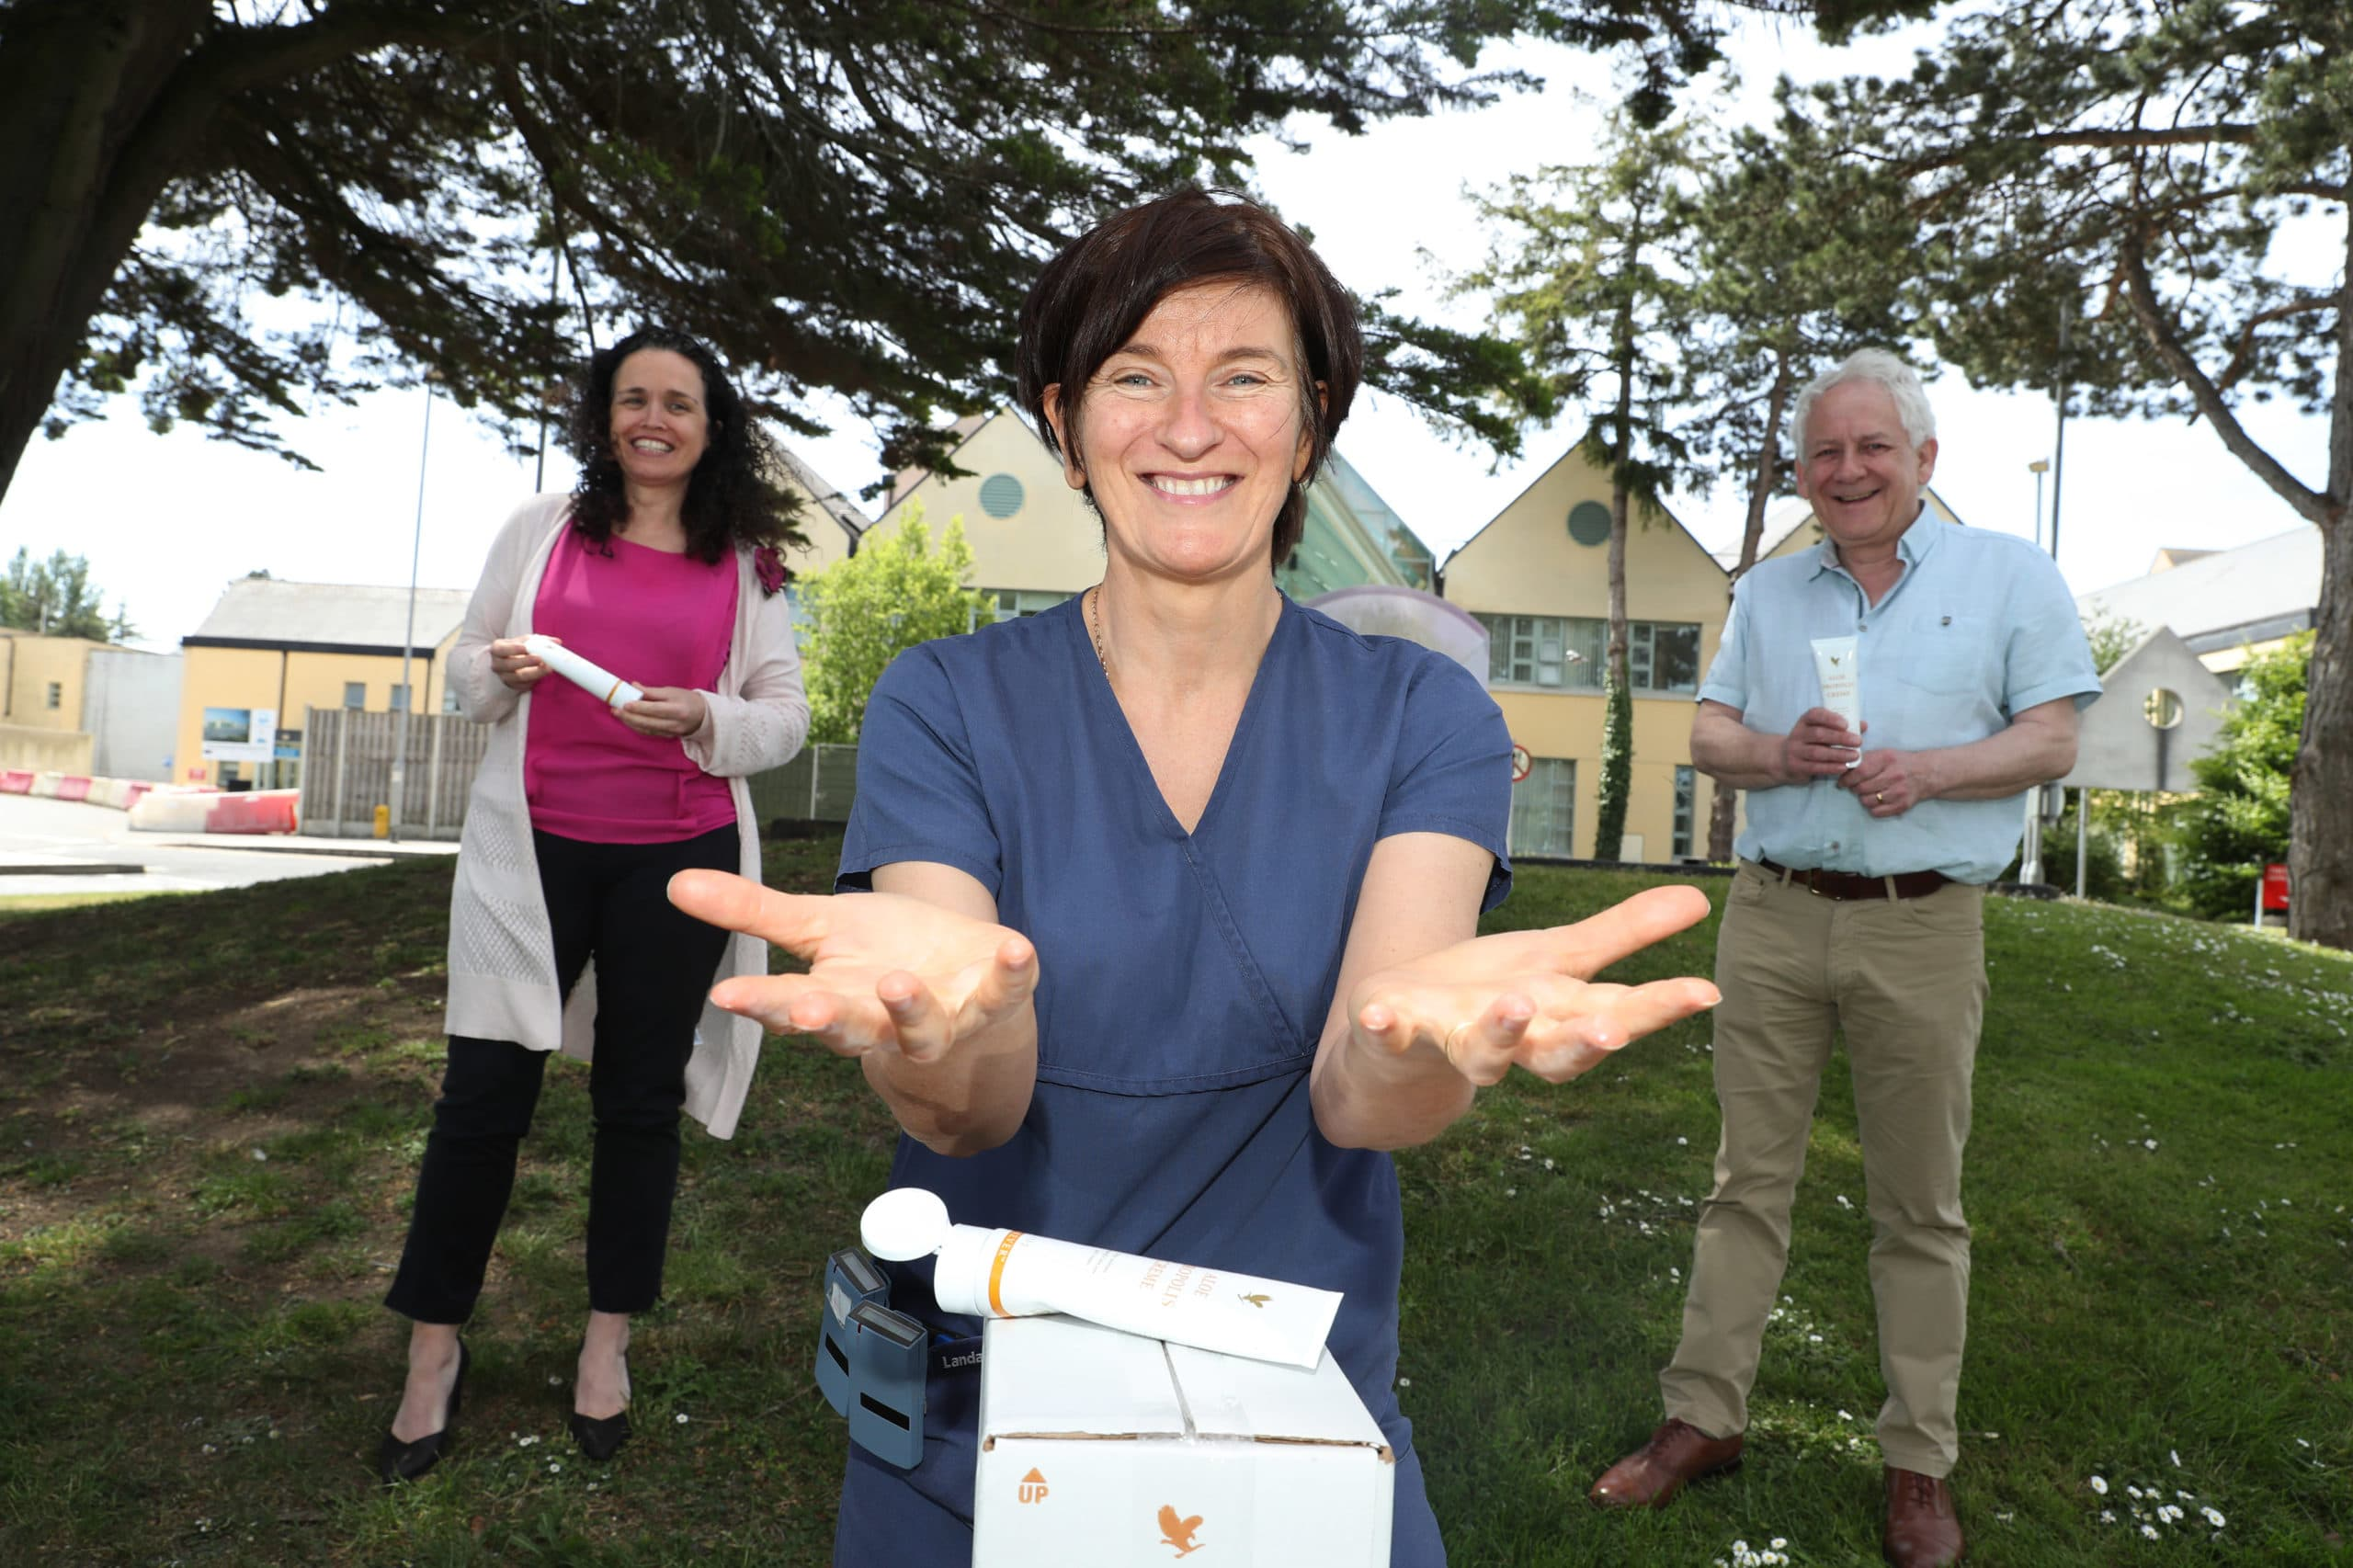 Cork front line nurses to get CWU donation of 'Propolis' cream to help treat skin damage and irritation from prolonged PPE use